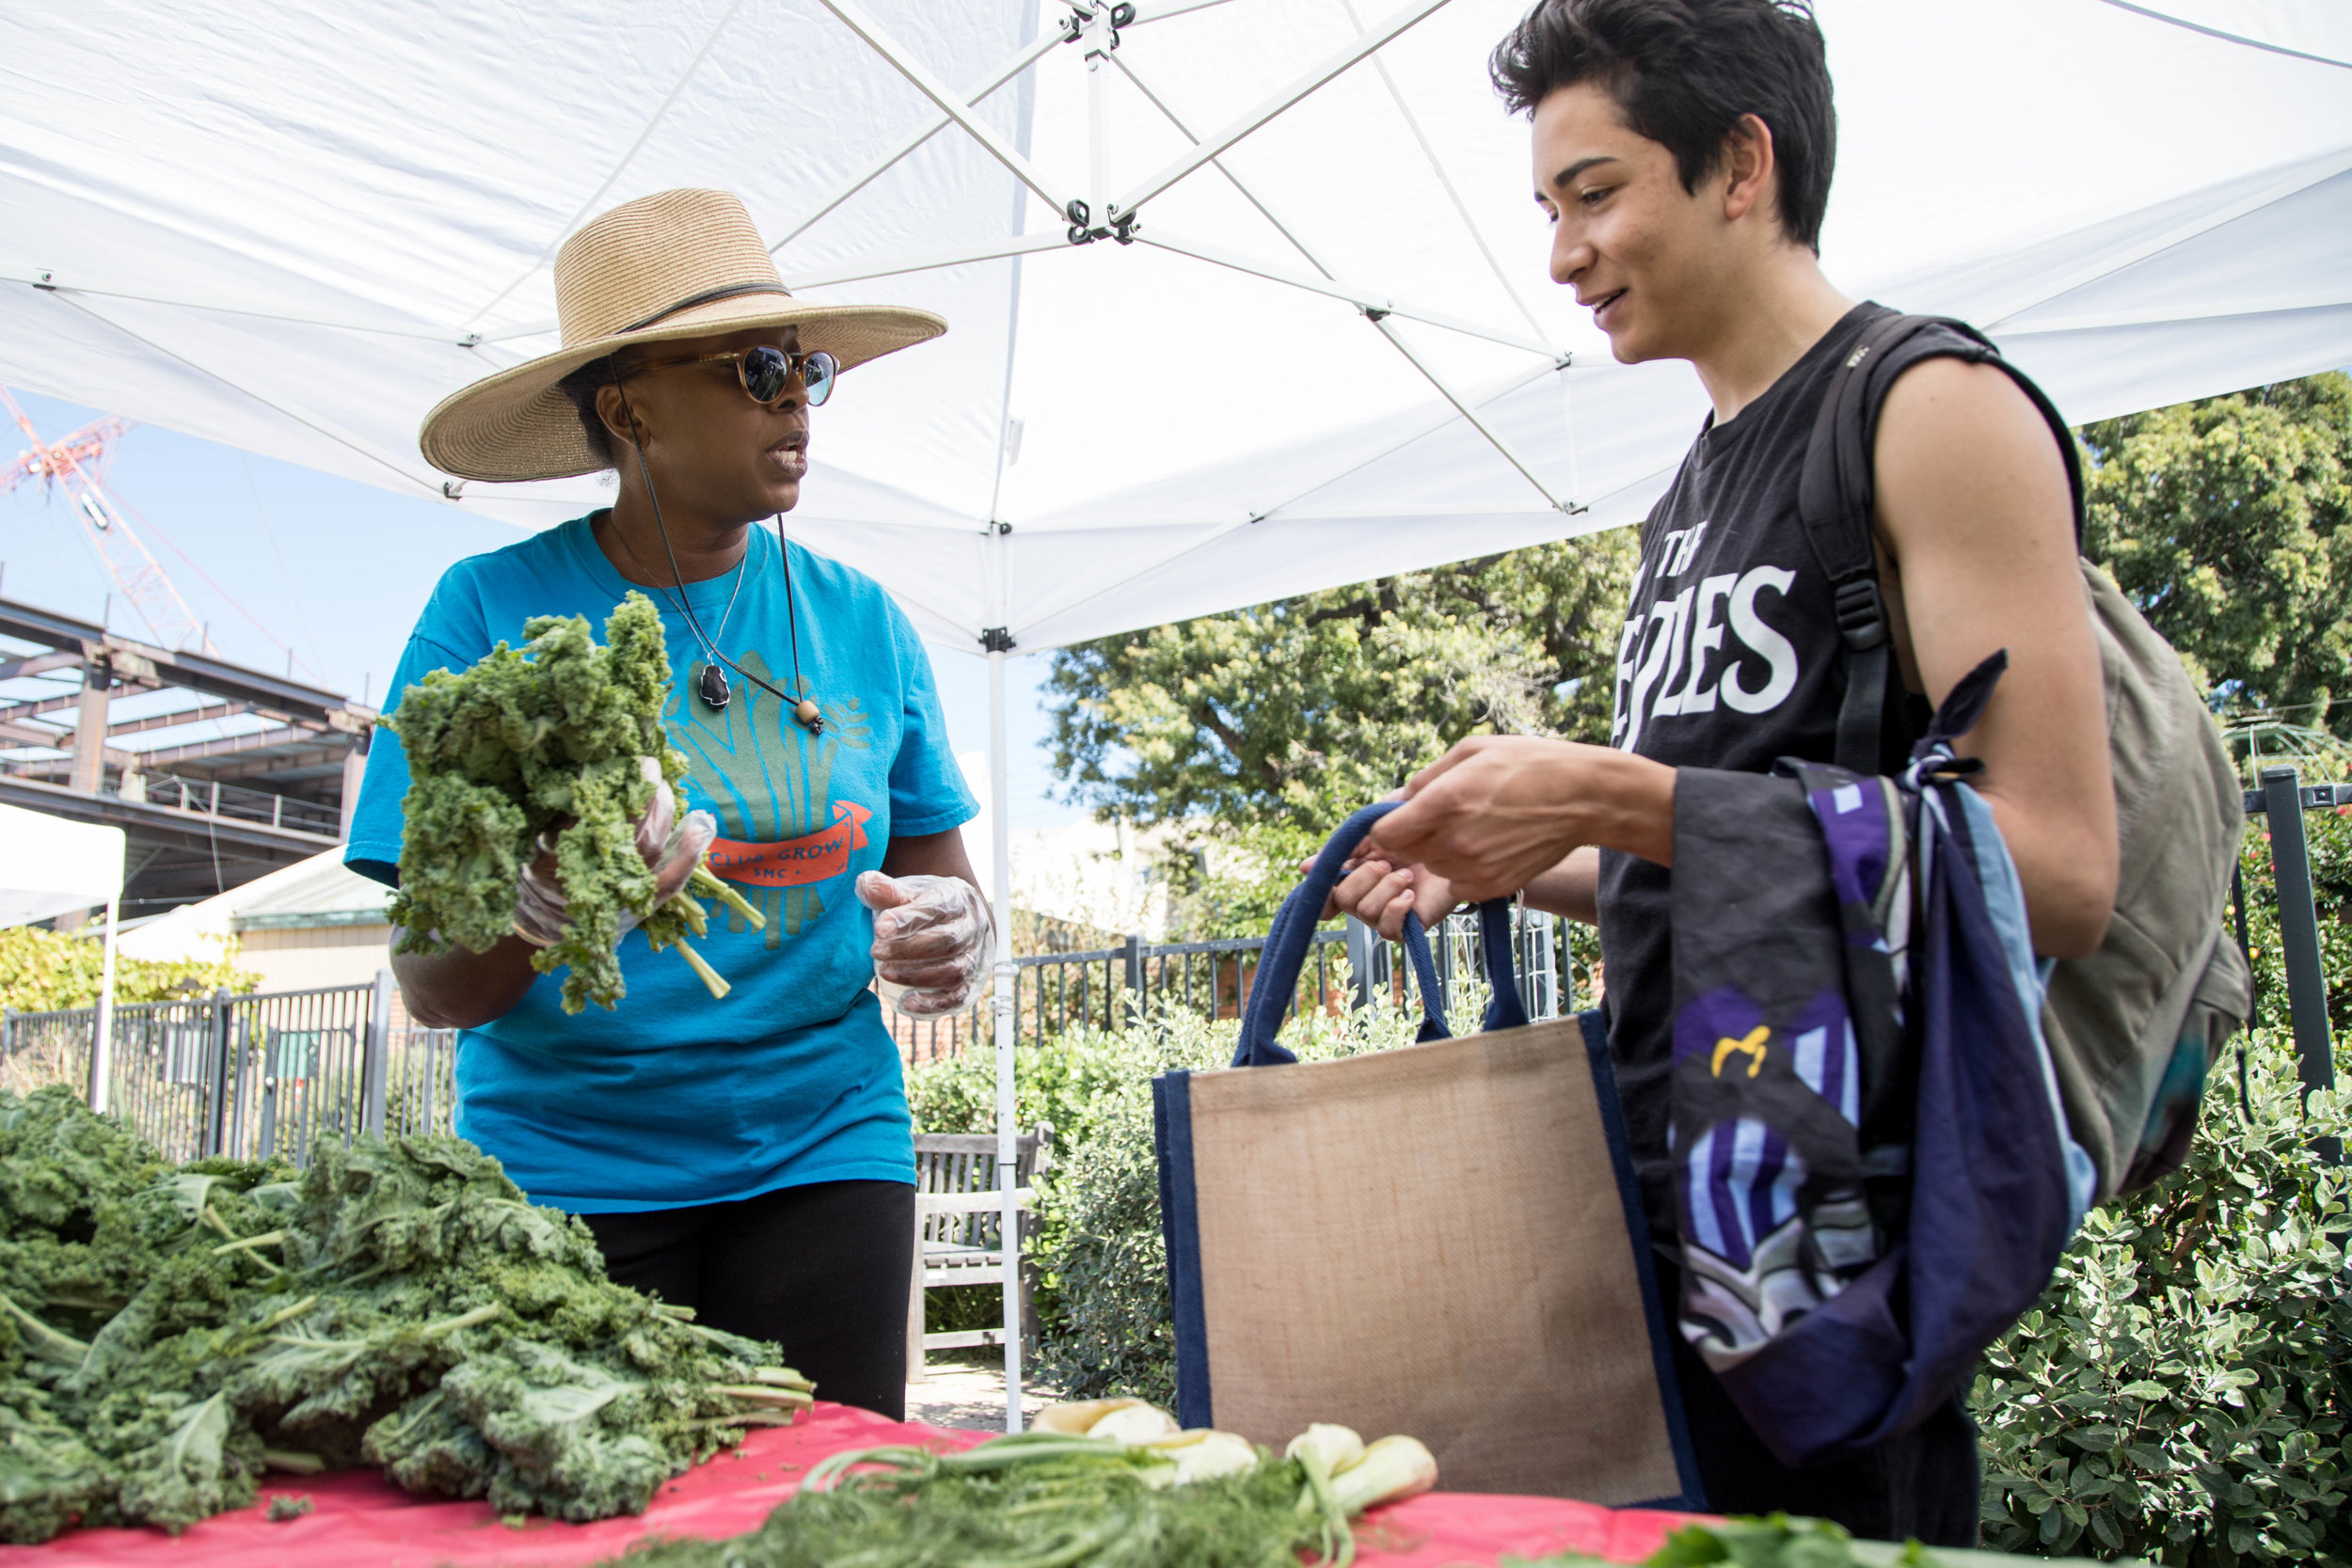 Seventeen year old Santa Monica College student Marco Garcia visits the Free Corsair Farmers Market for the first time on October 16, 2017. He gets advice on how to cook greens from Garden manager Cynthia Kraus during Sustainability Week at SMC in Santa Monica, Calif. (Photo: Jazz Shademan)